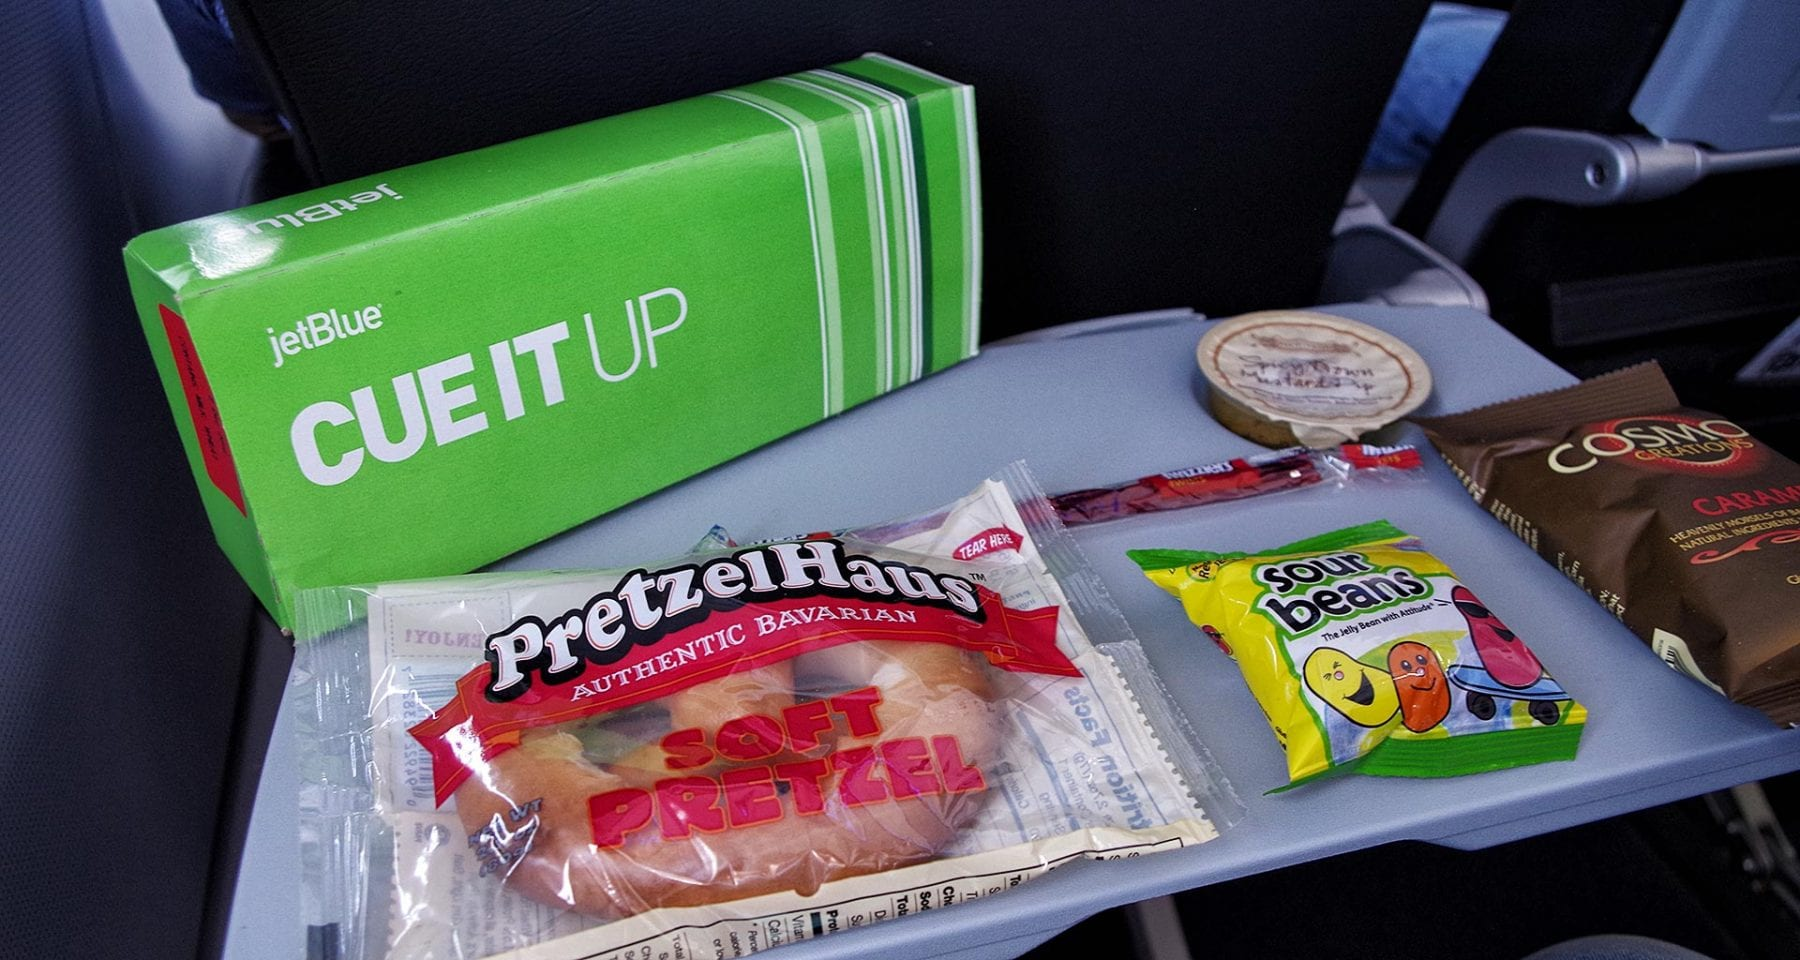 Jetblue cue it up snack box economy class